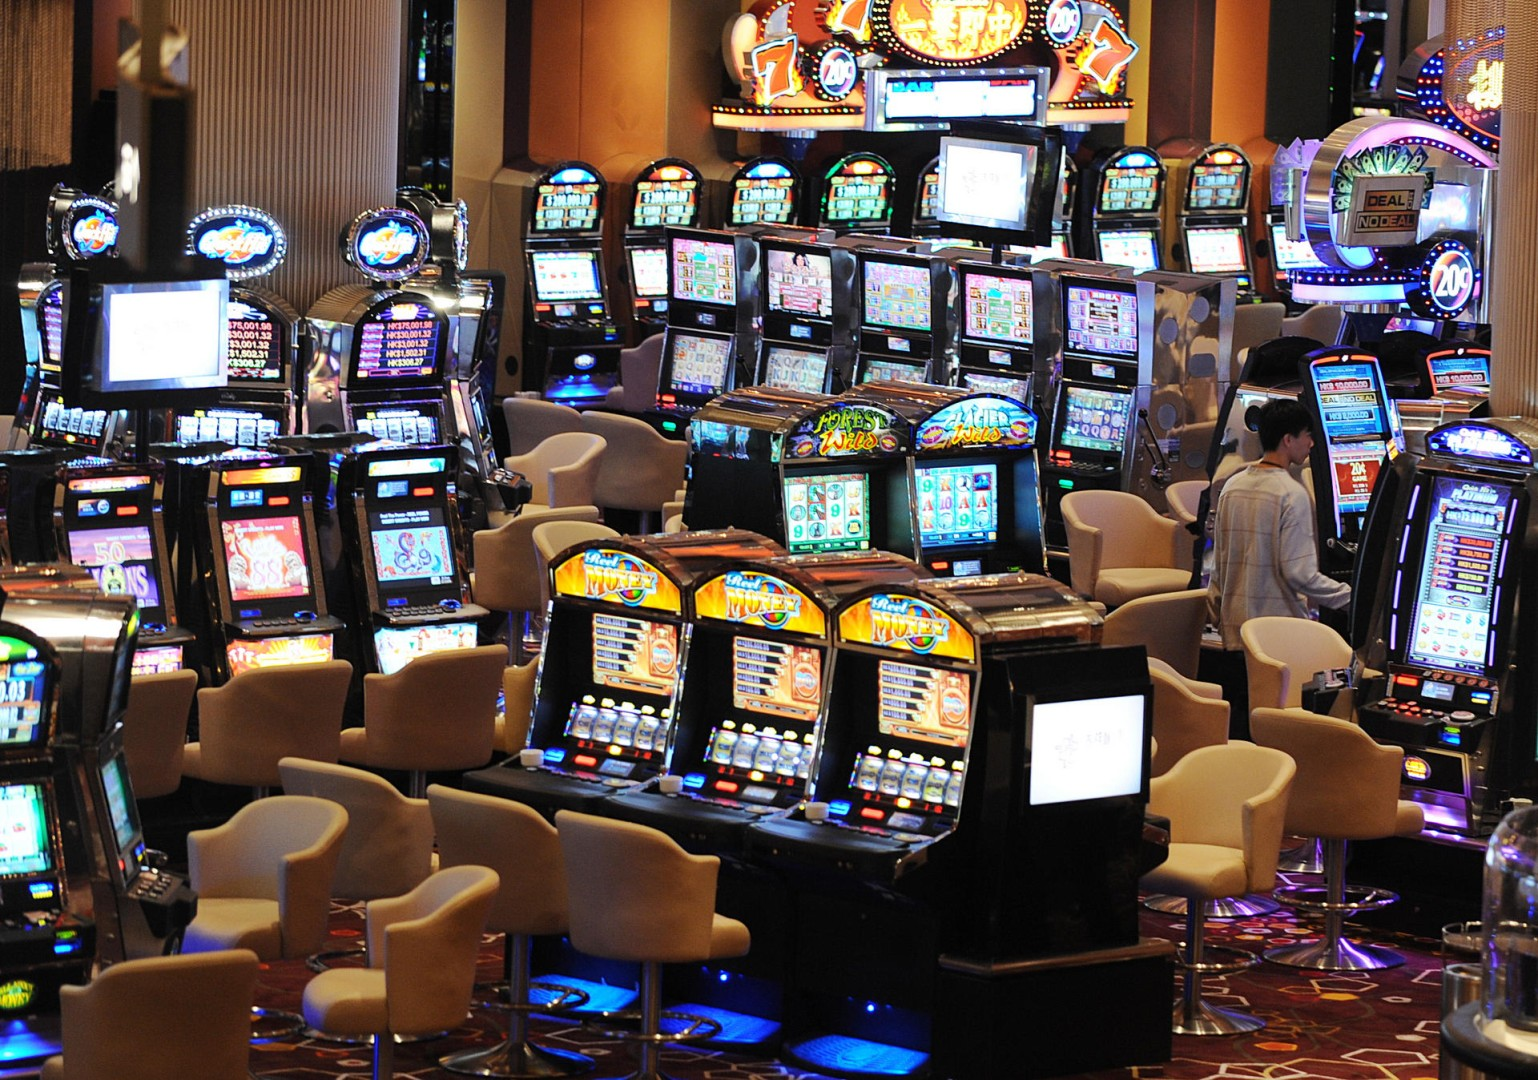 Vacant Slots The Ghost In Macaus Slot Machines South China